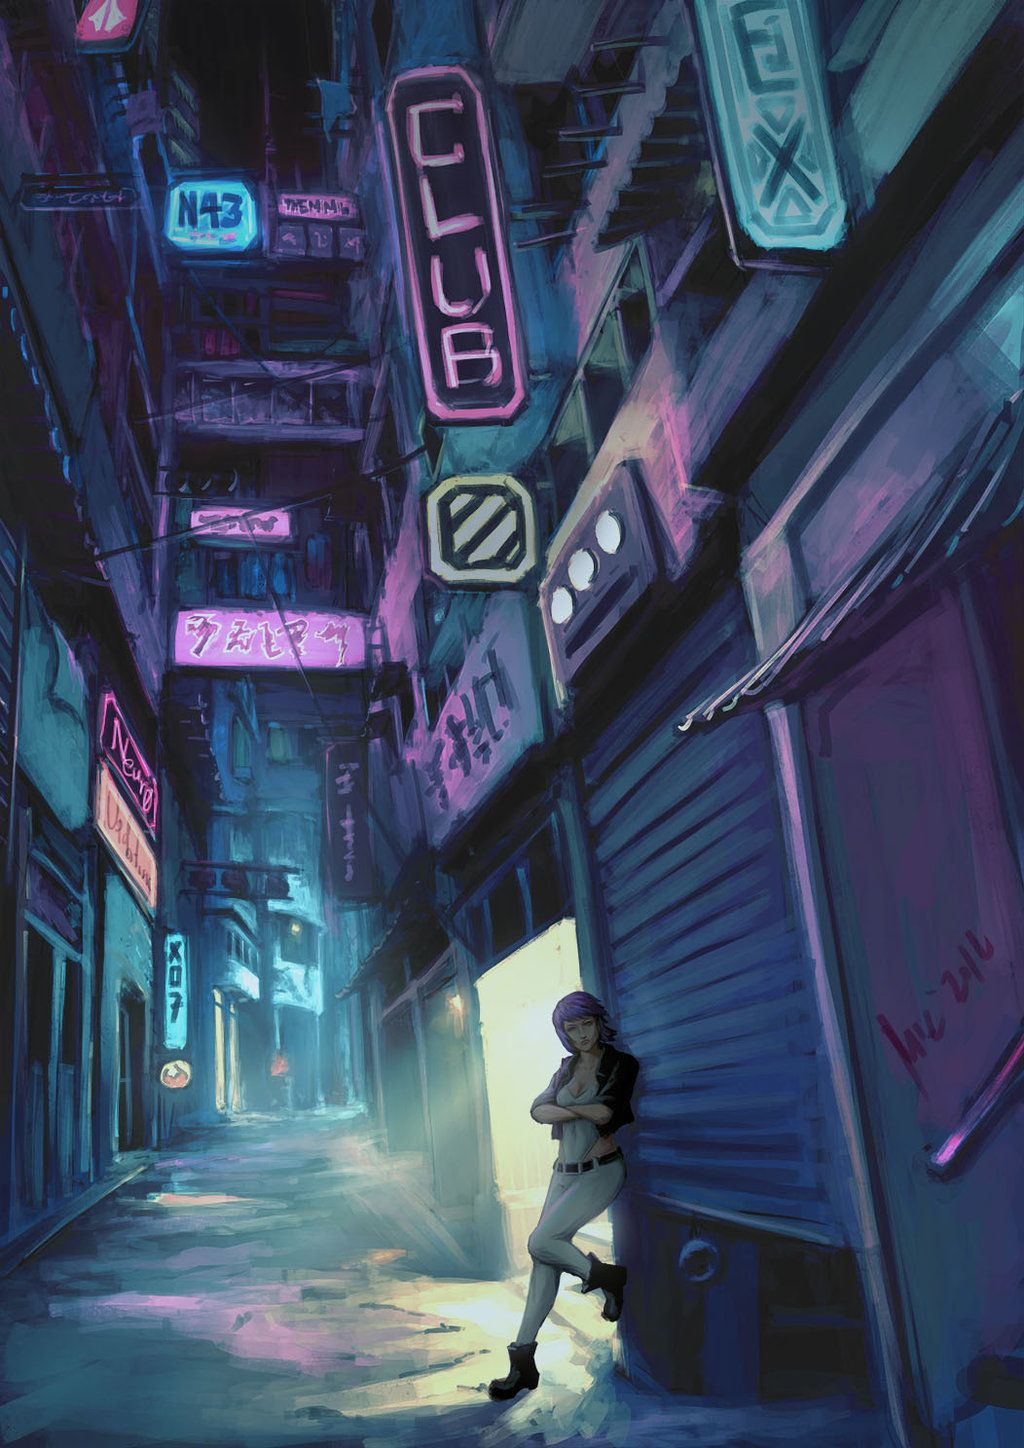 Ghost In The Shell Ghost In The Shell Cyberpunk City Cyberpunk Aesthetic